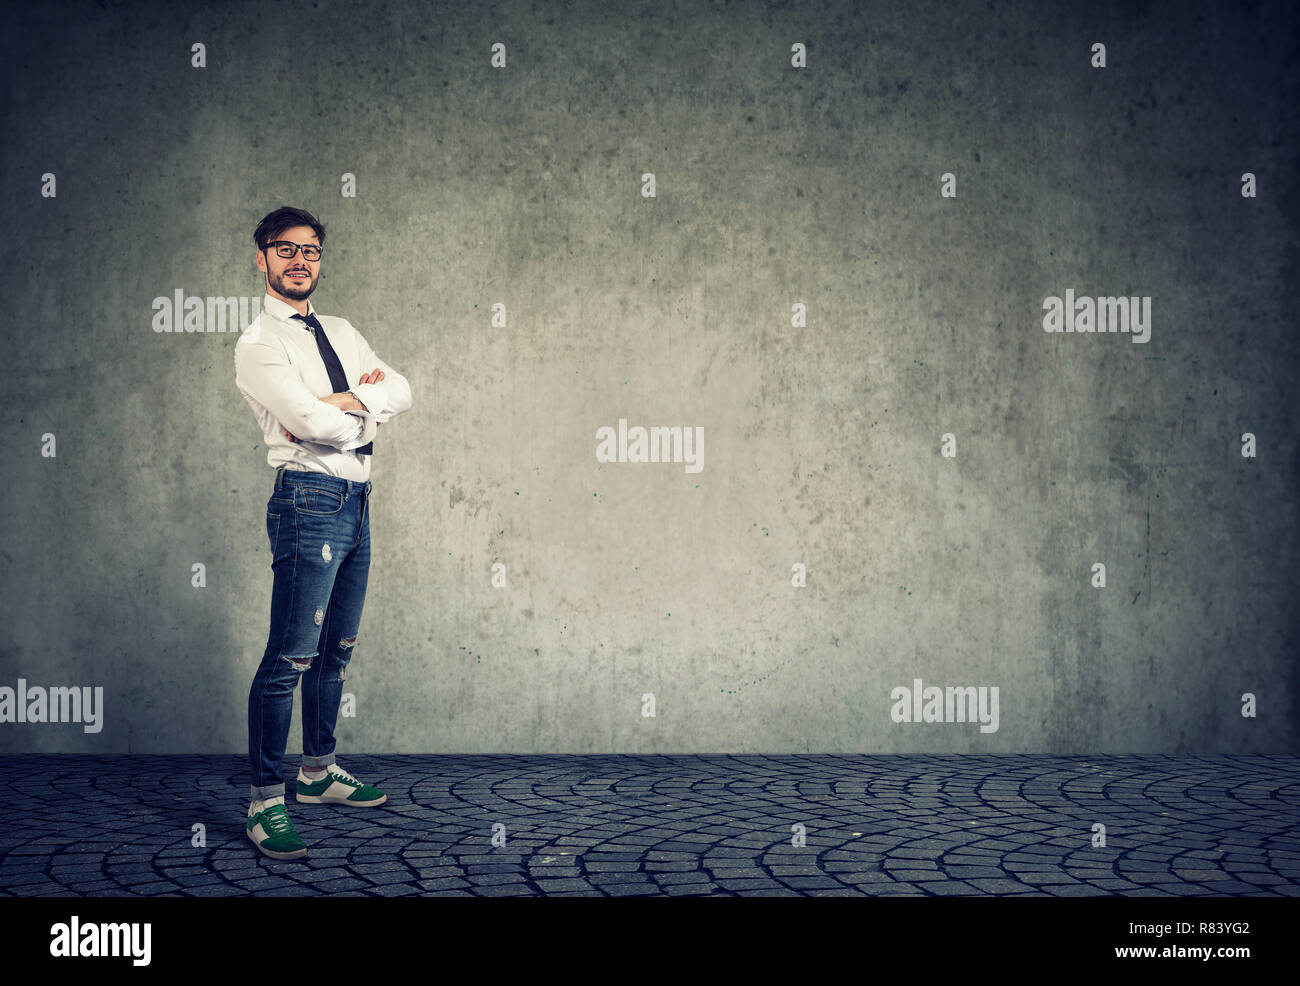 Happy casual modern man in white shirt and denim standing against gray wall background - Stock Image